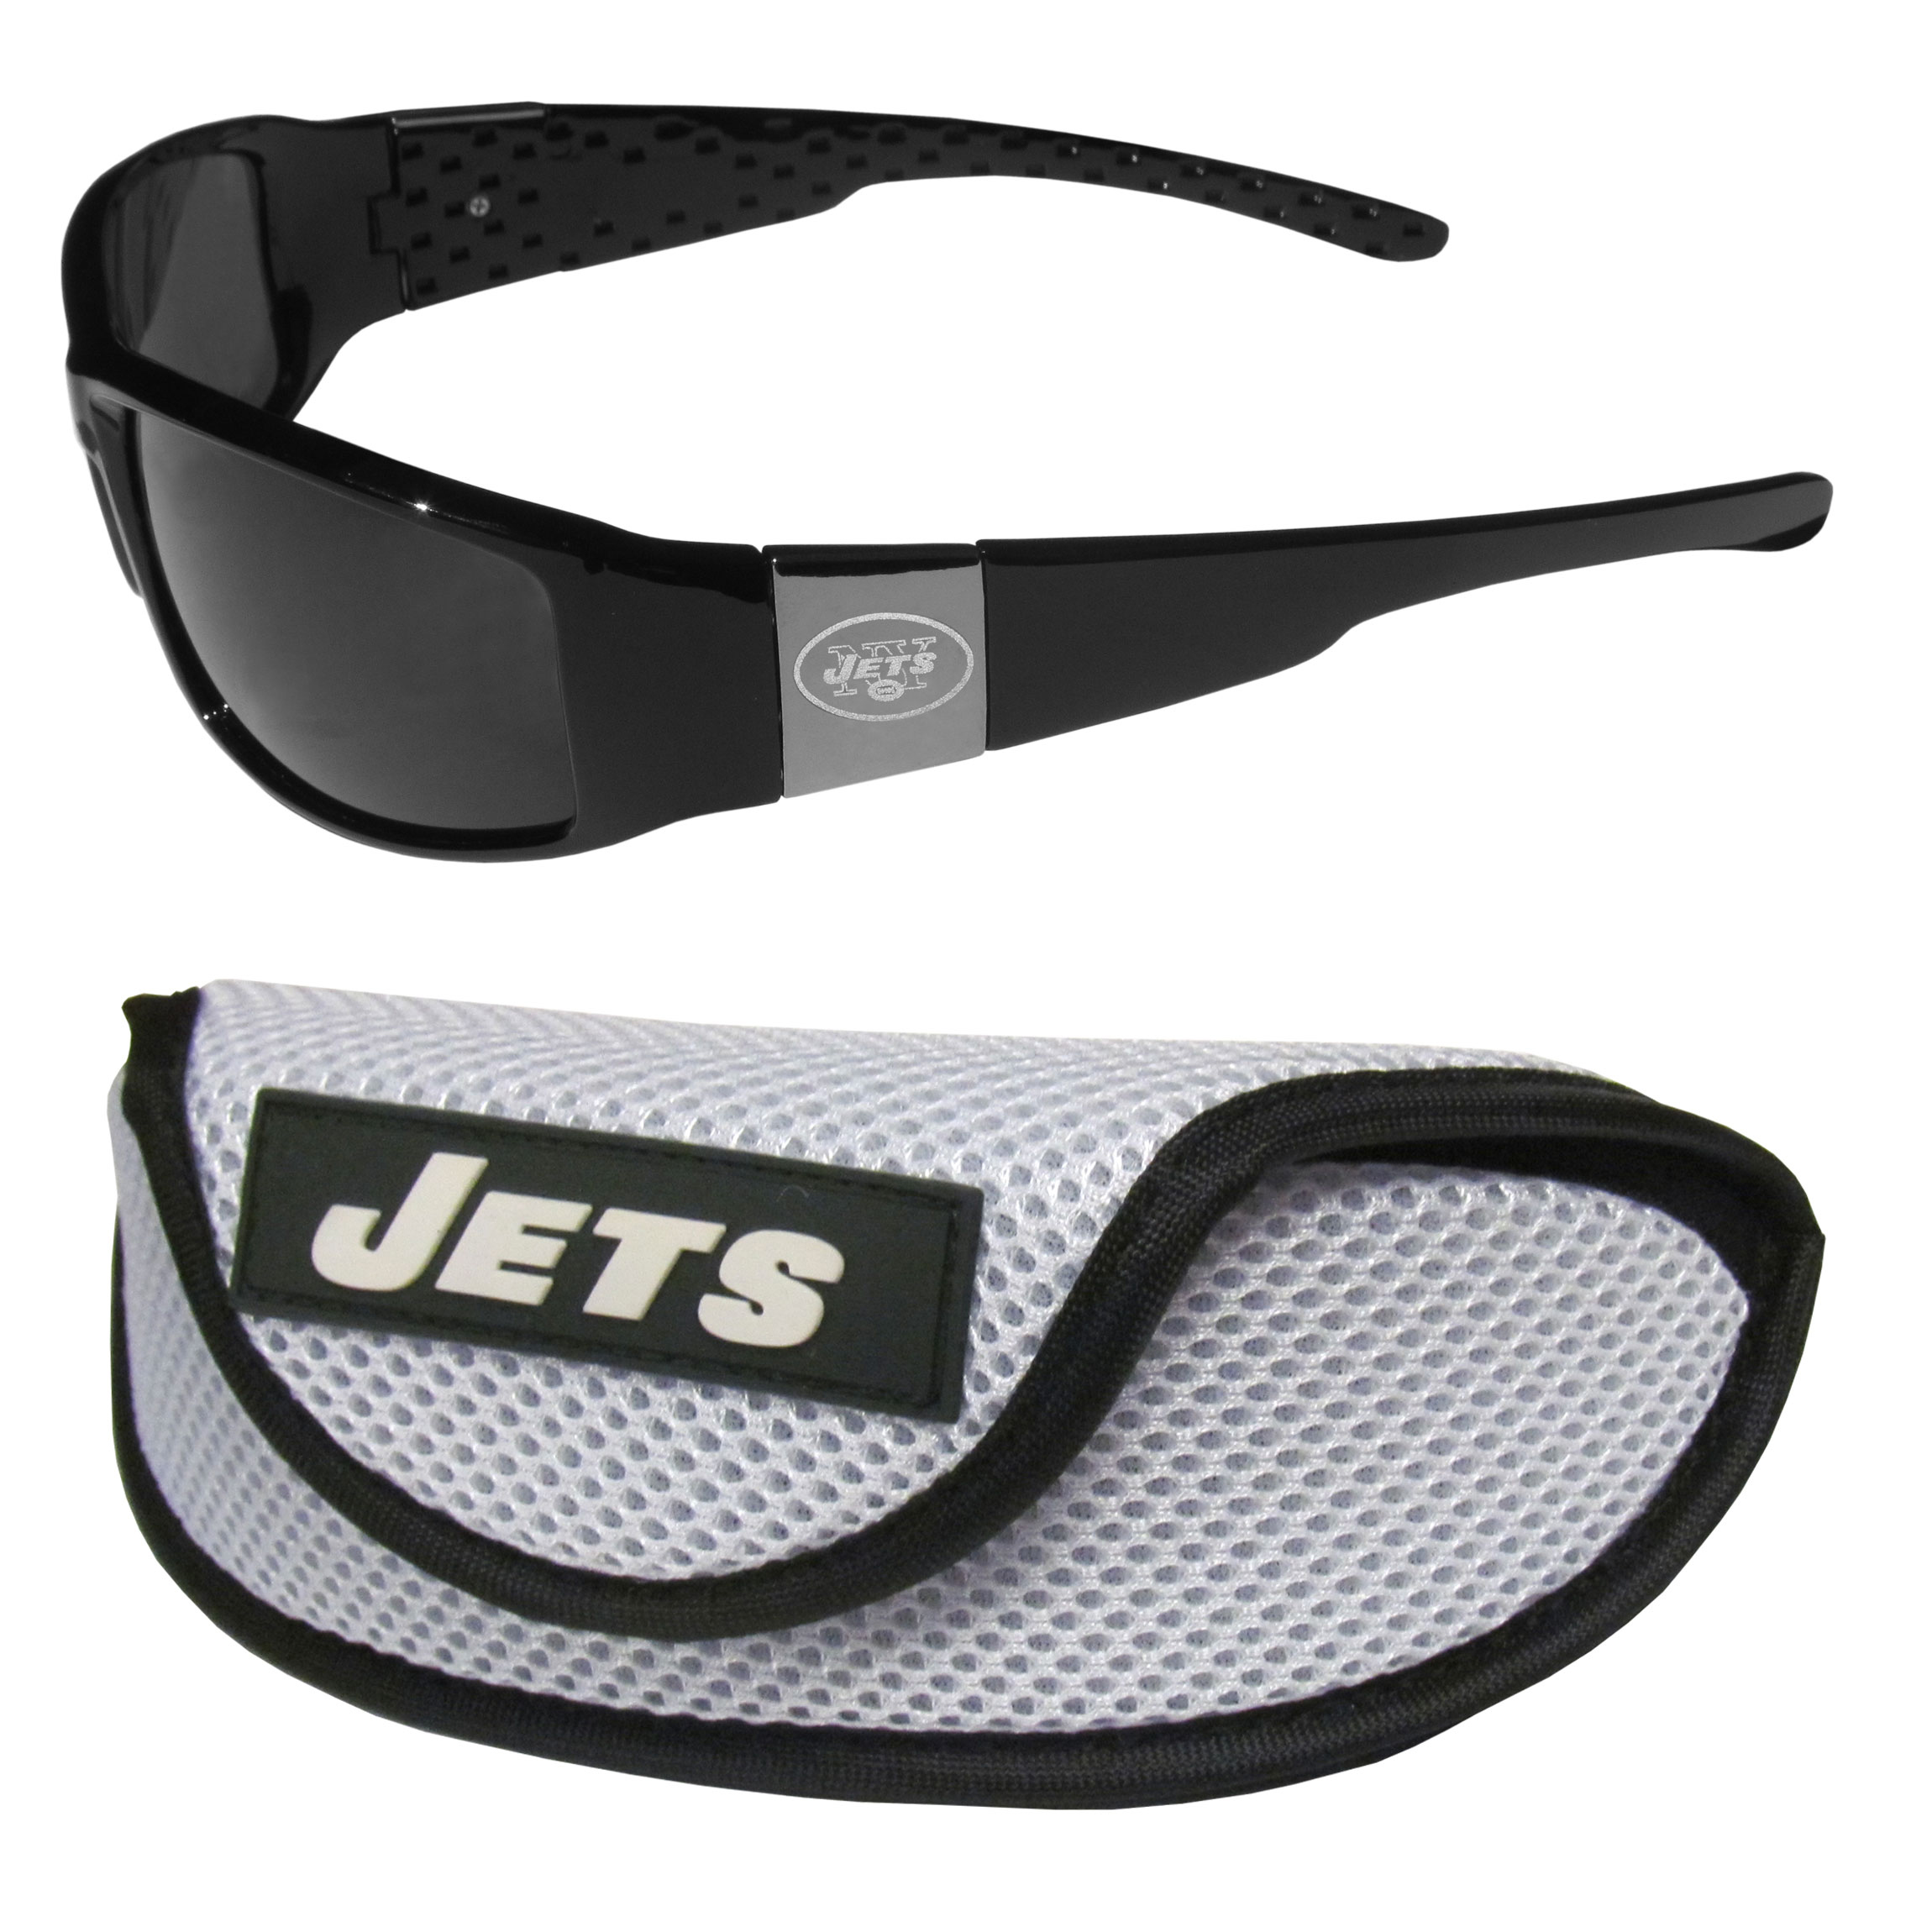 New York Jets Chrome Wrap Sunglasses and Sports Case - Our sleek and stylish New York Jets chrome wrap sunglasses and our sporty mesh case. The sunglasses feature etched team logos on each arm and 100% UVA/UVB protection. The case features a large and colorful team emblem.